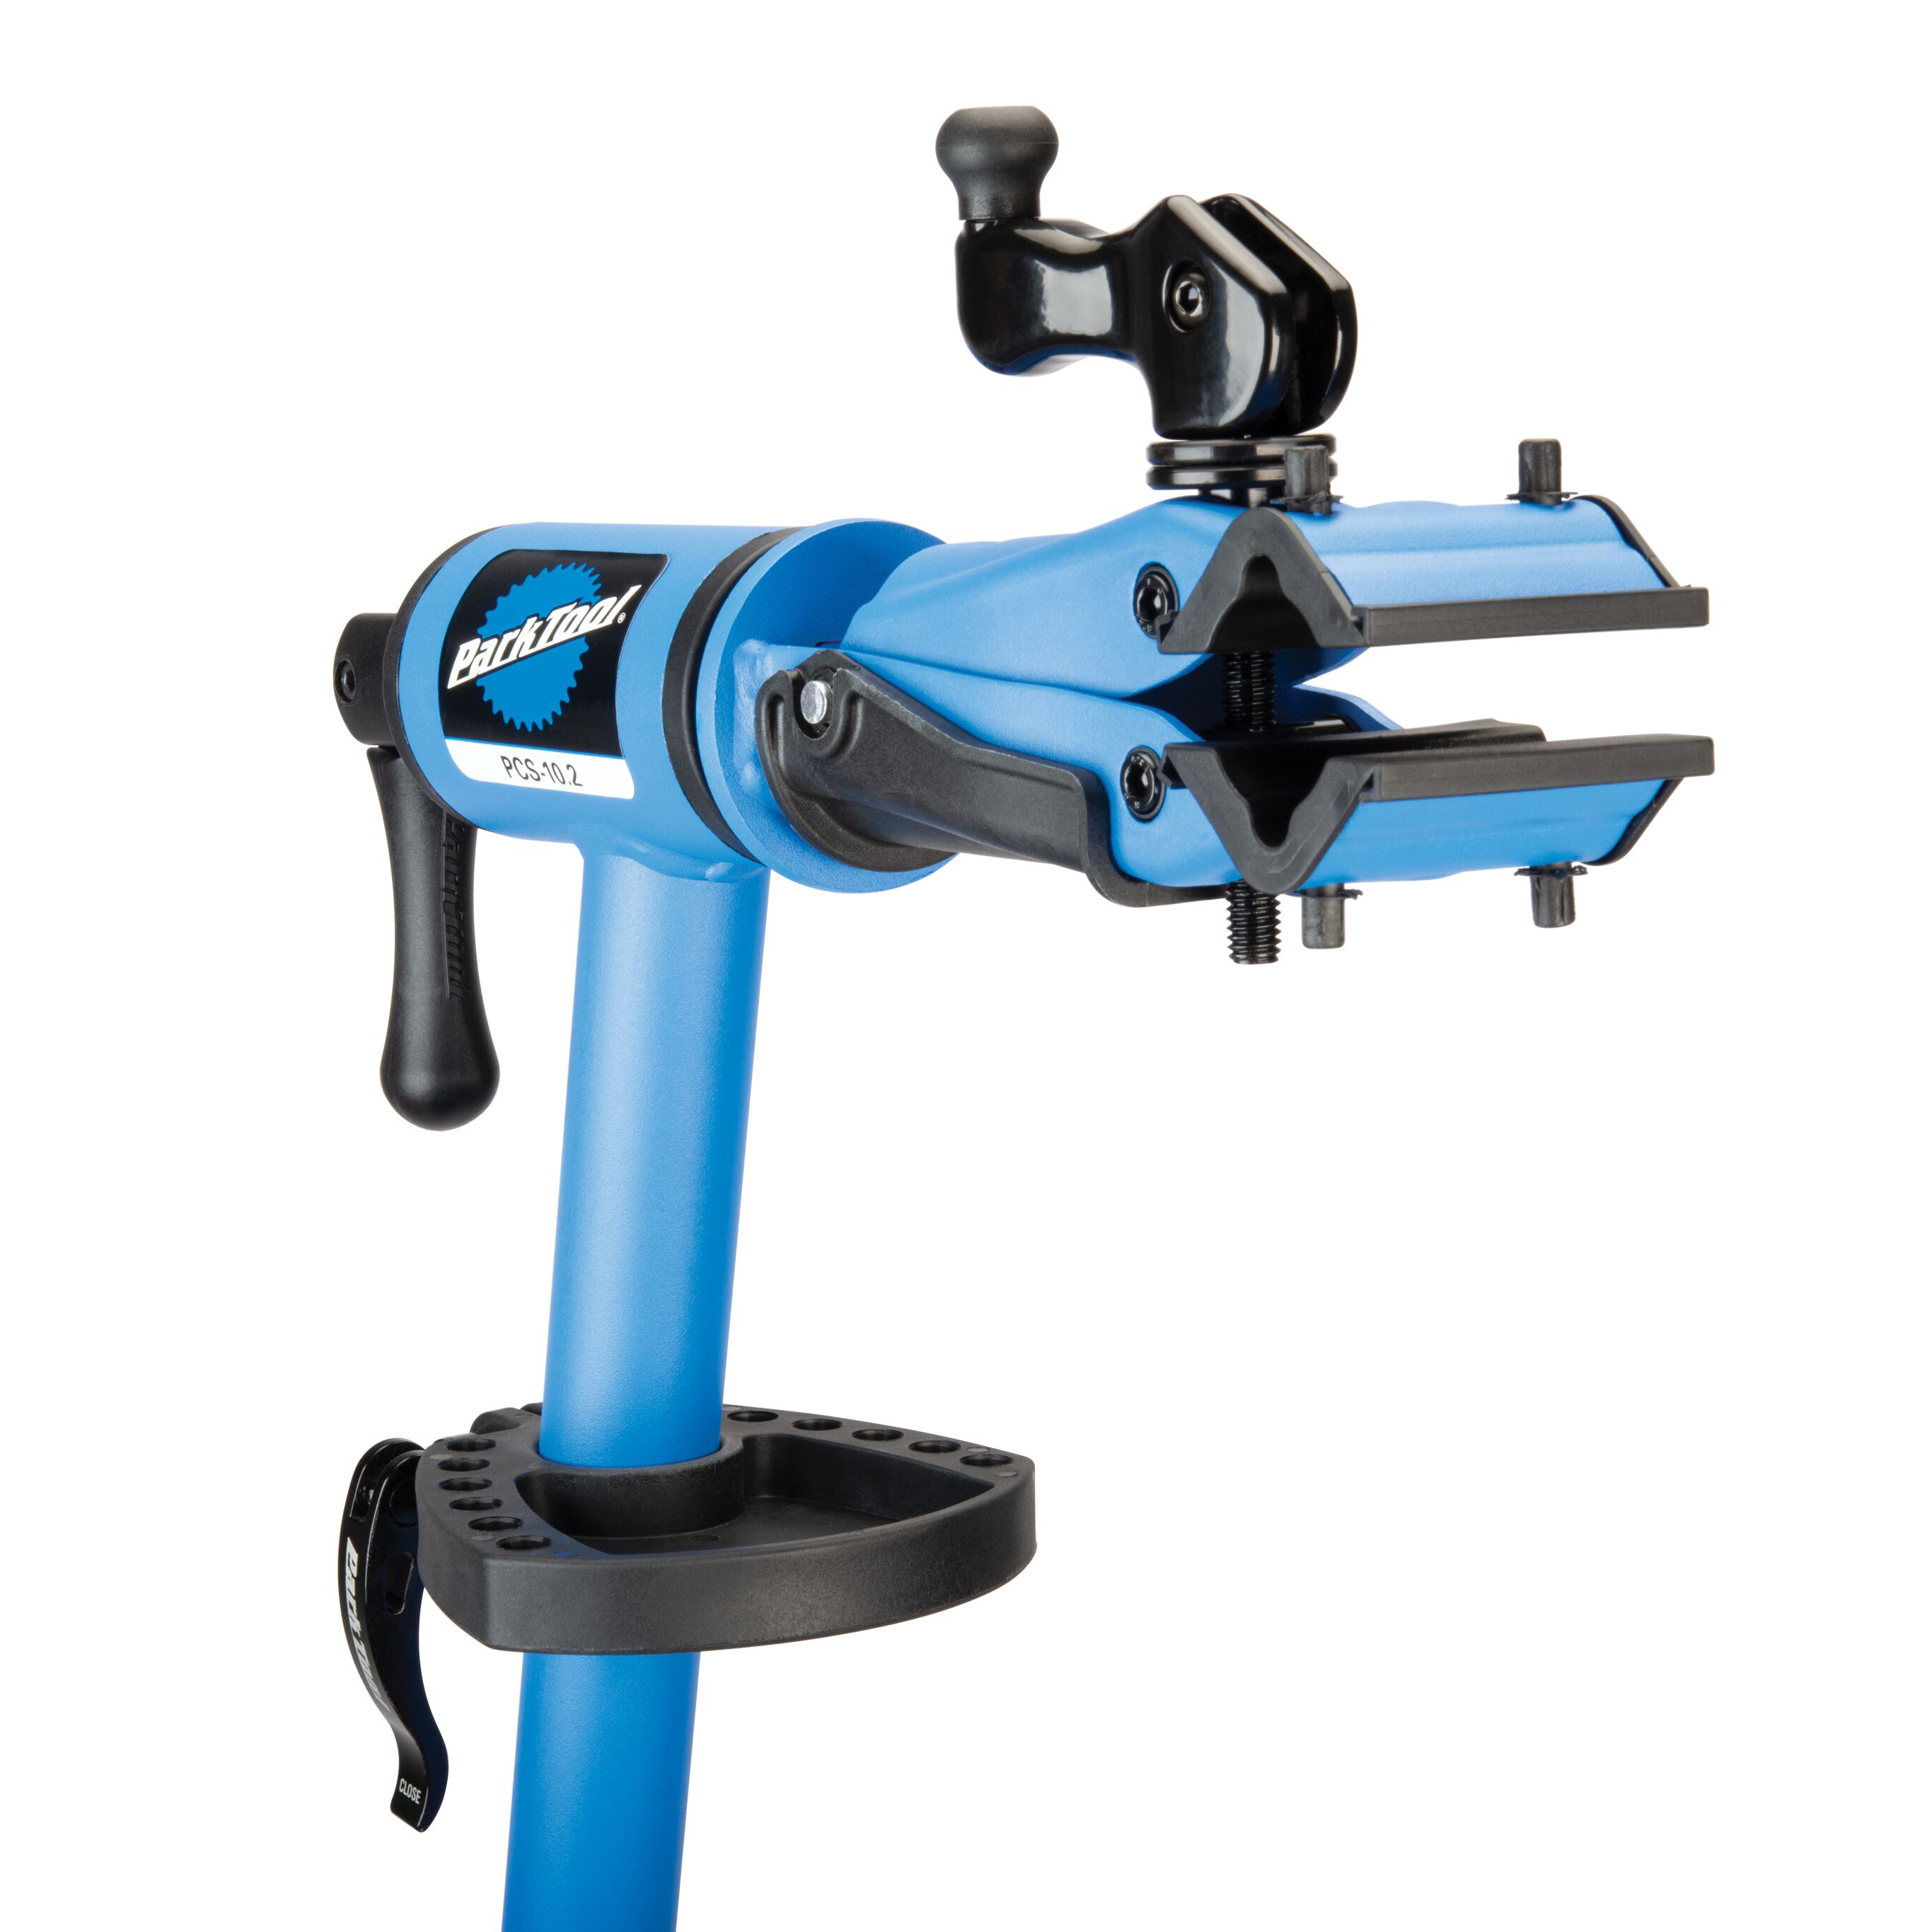 Park Tool Pcs 10 2 Home Repair Stand Jenson Usa